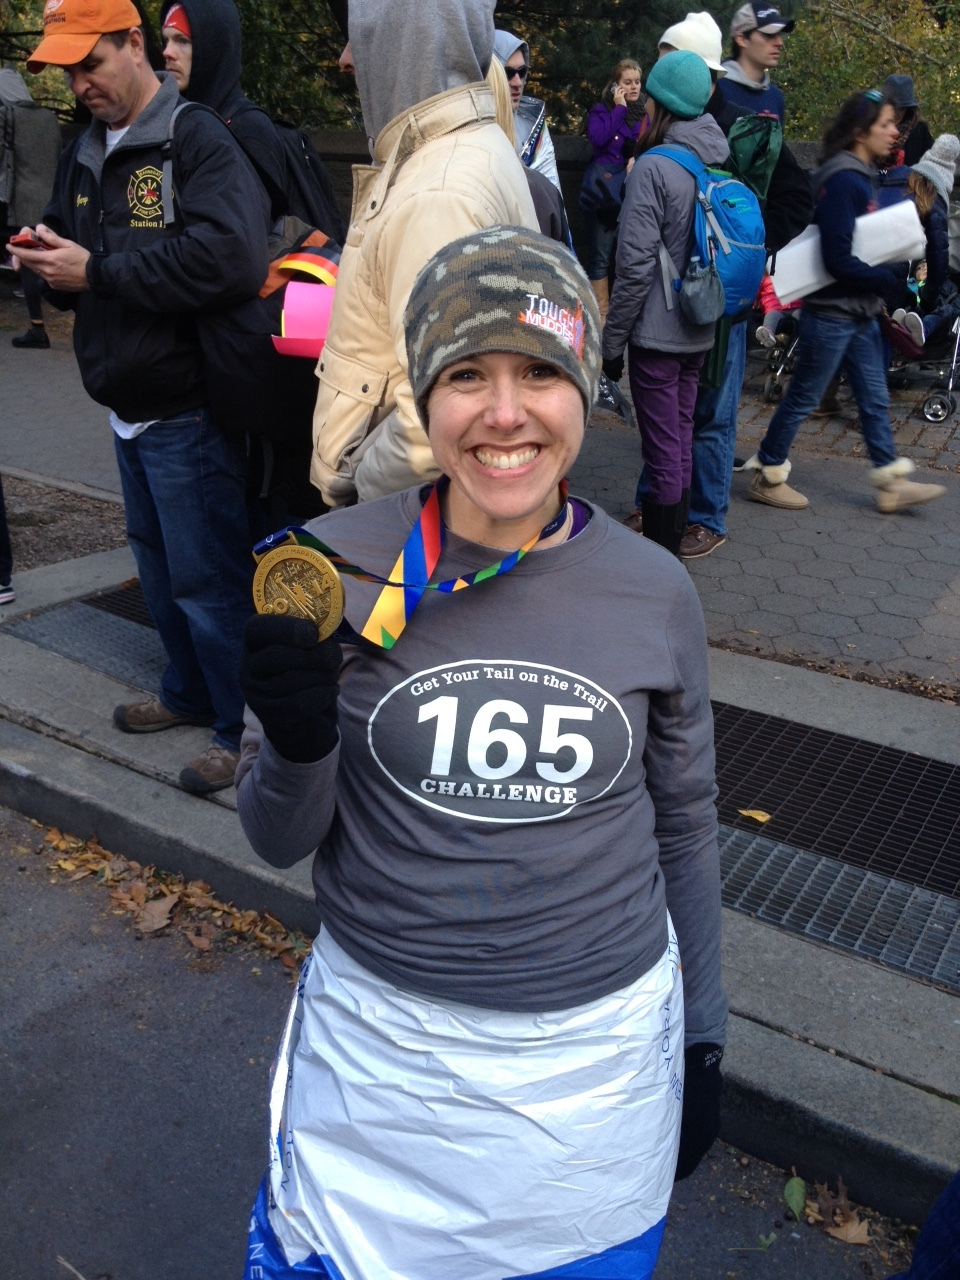 All smiles after a PR in the NYC Marathon.